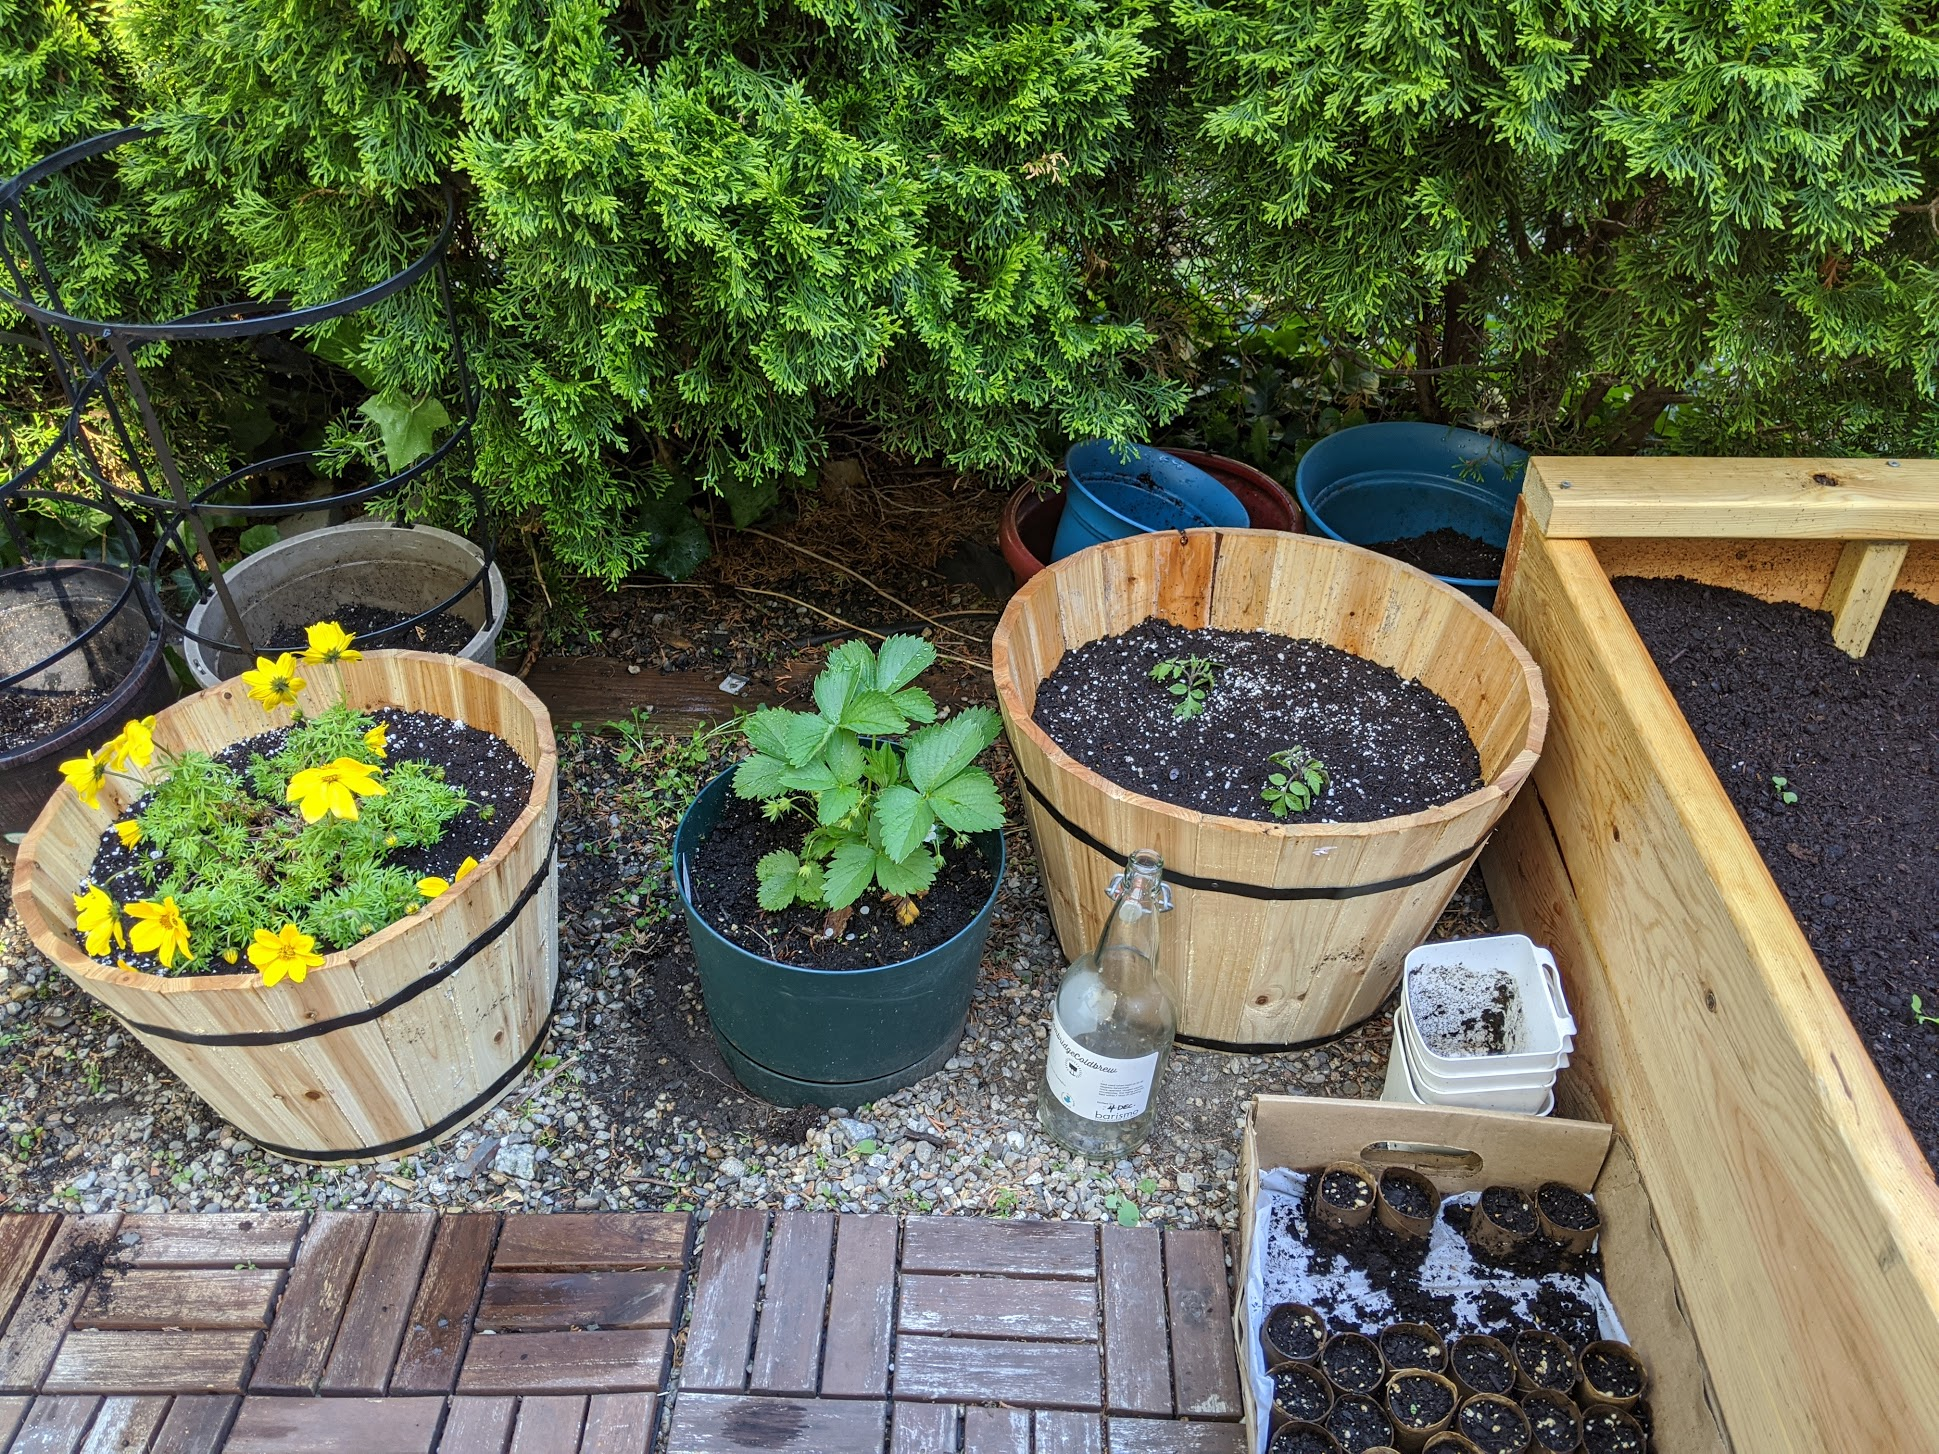 3 larger planters, with bright yellow flowers, strawberry plant, and young tomatoes.